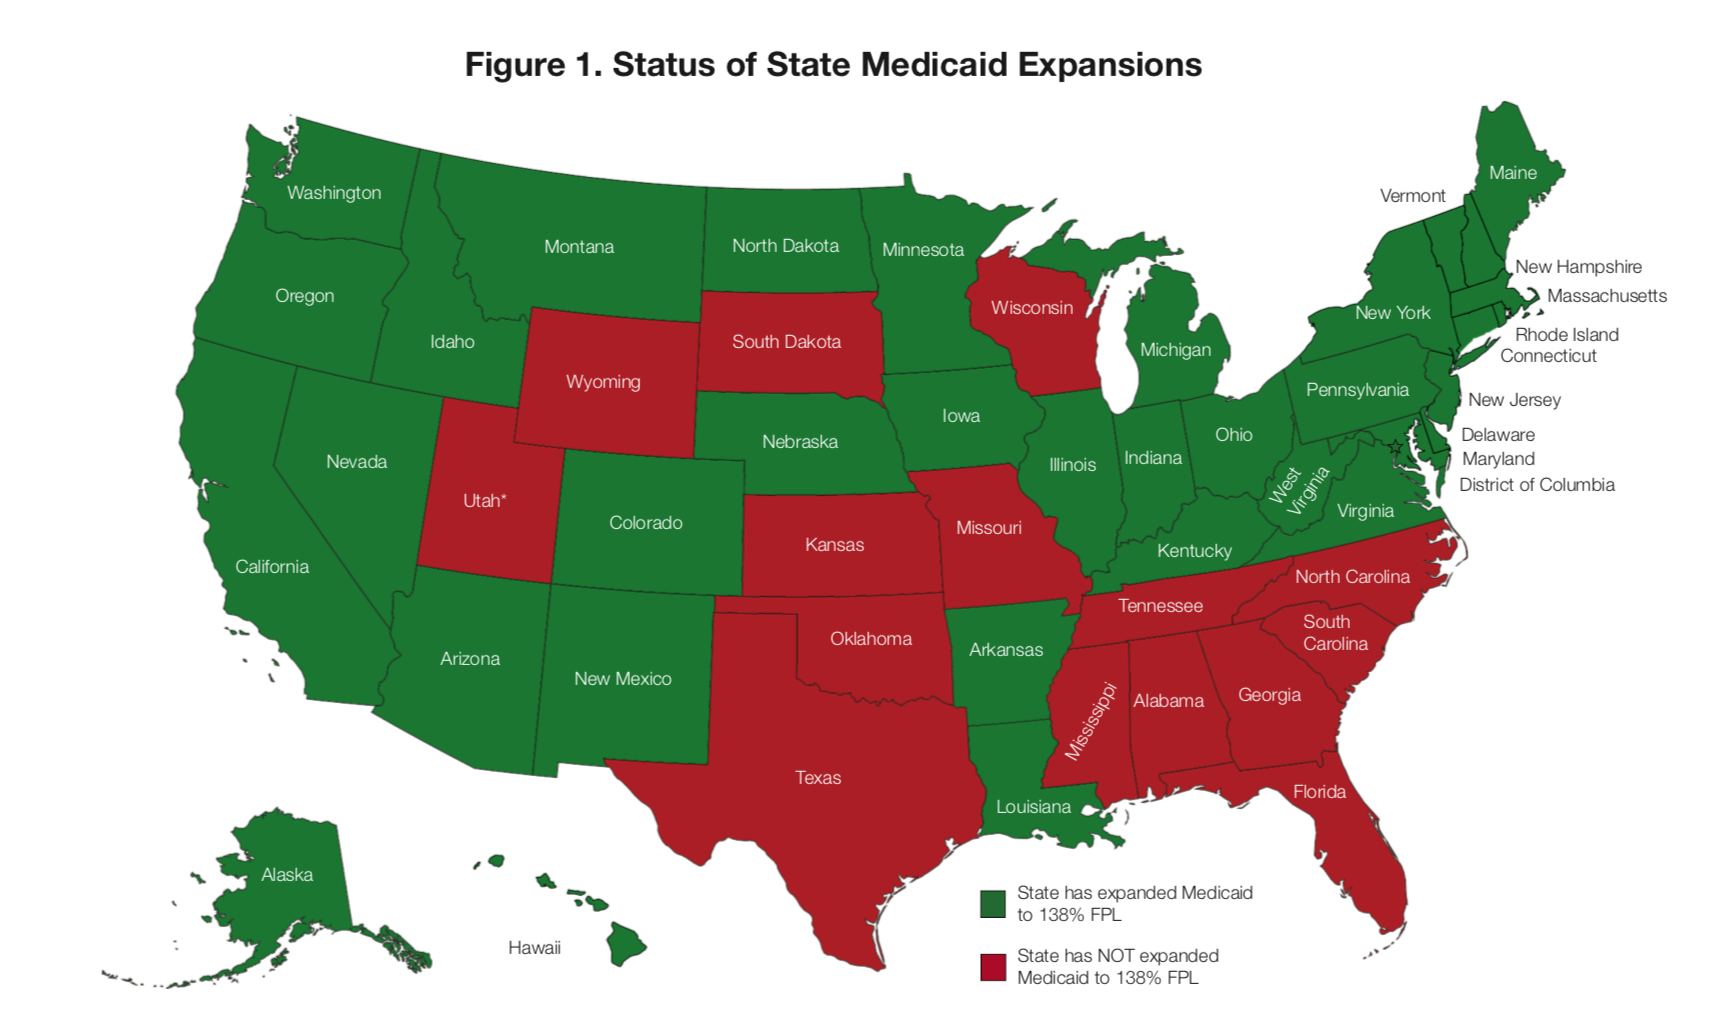 Figure 1. Status of State Medicaid Expansions